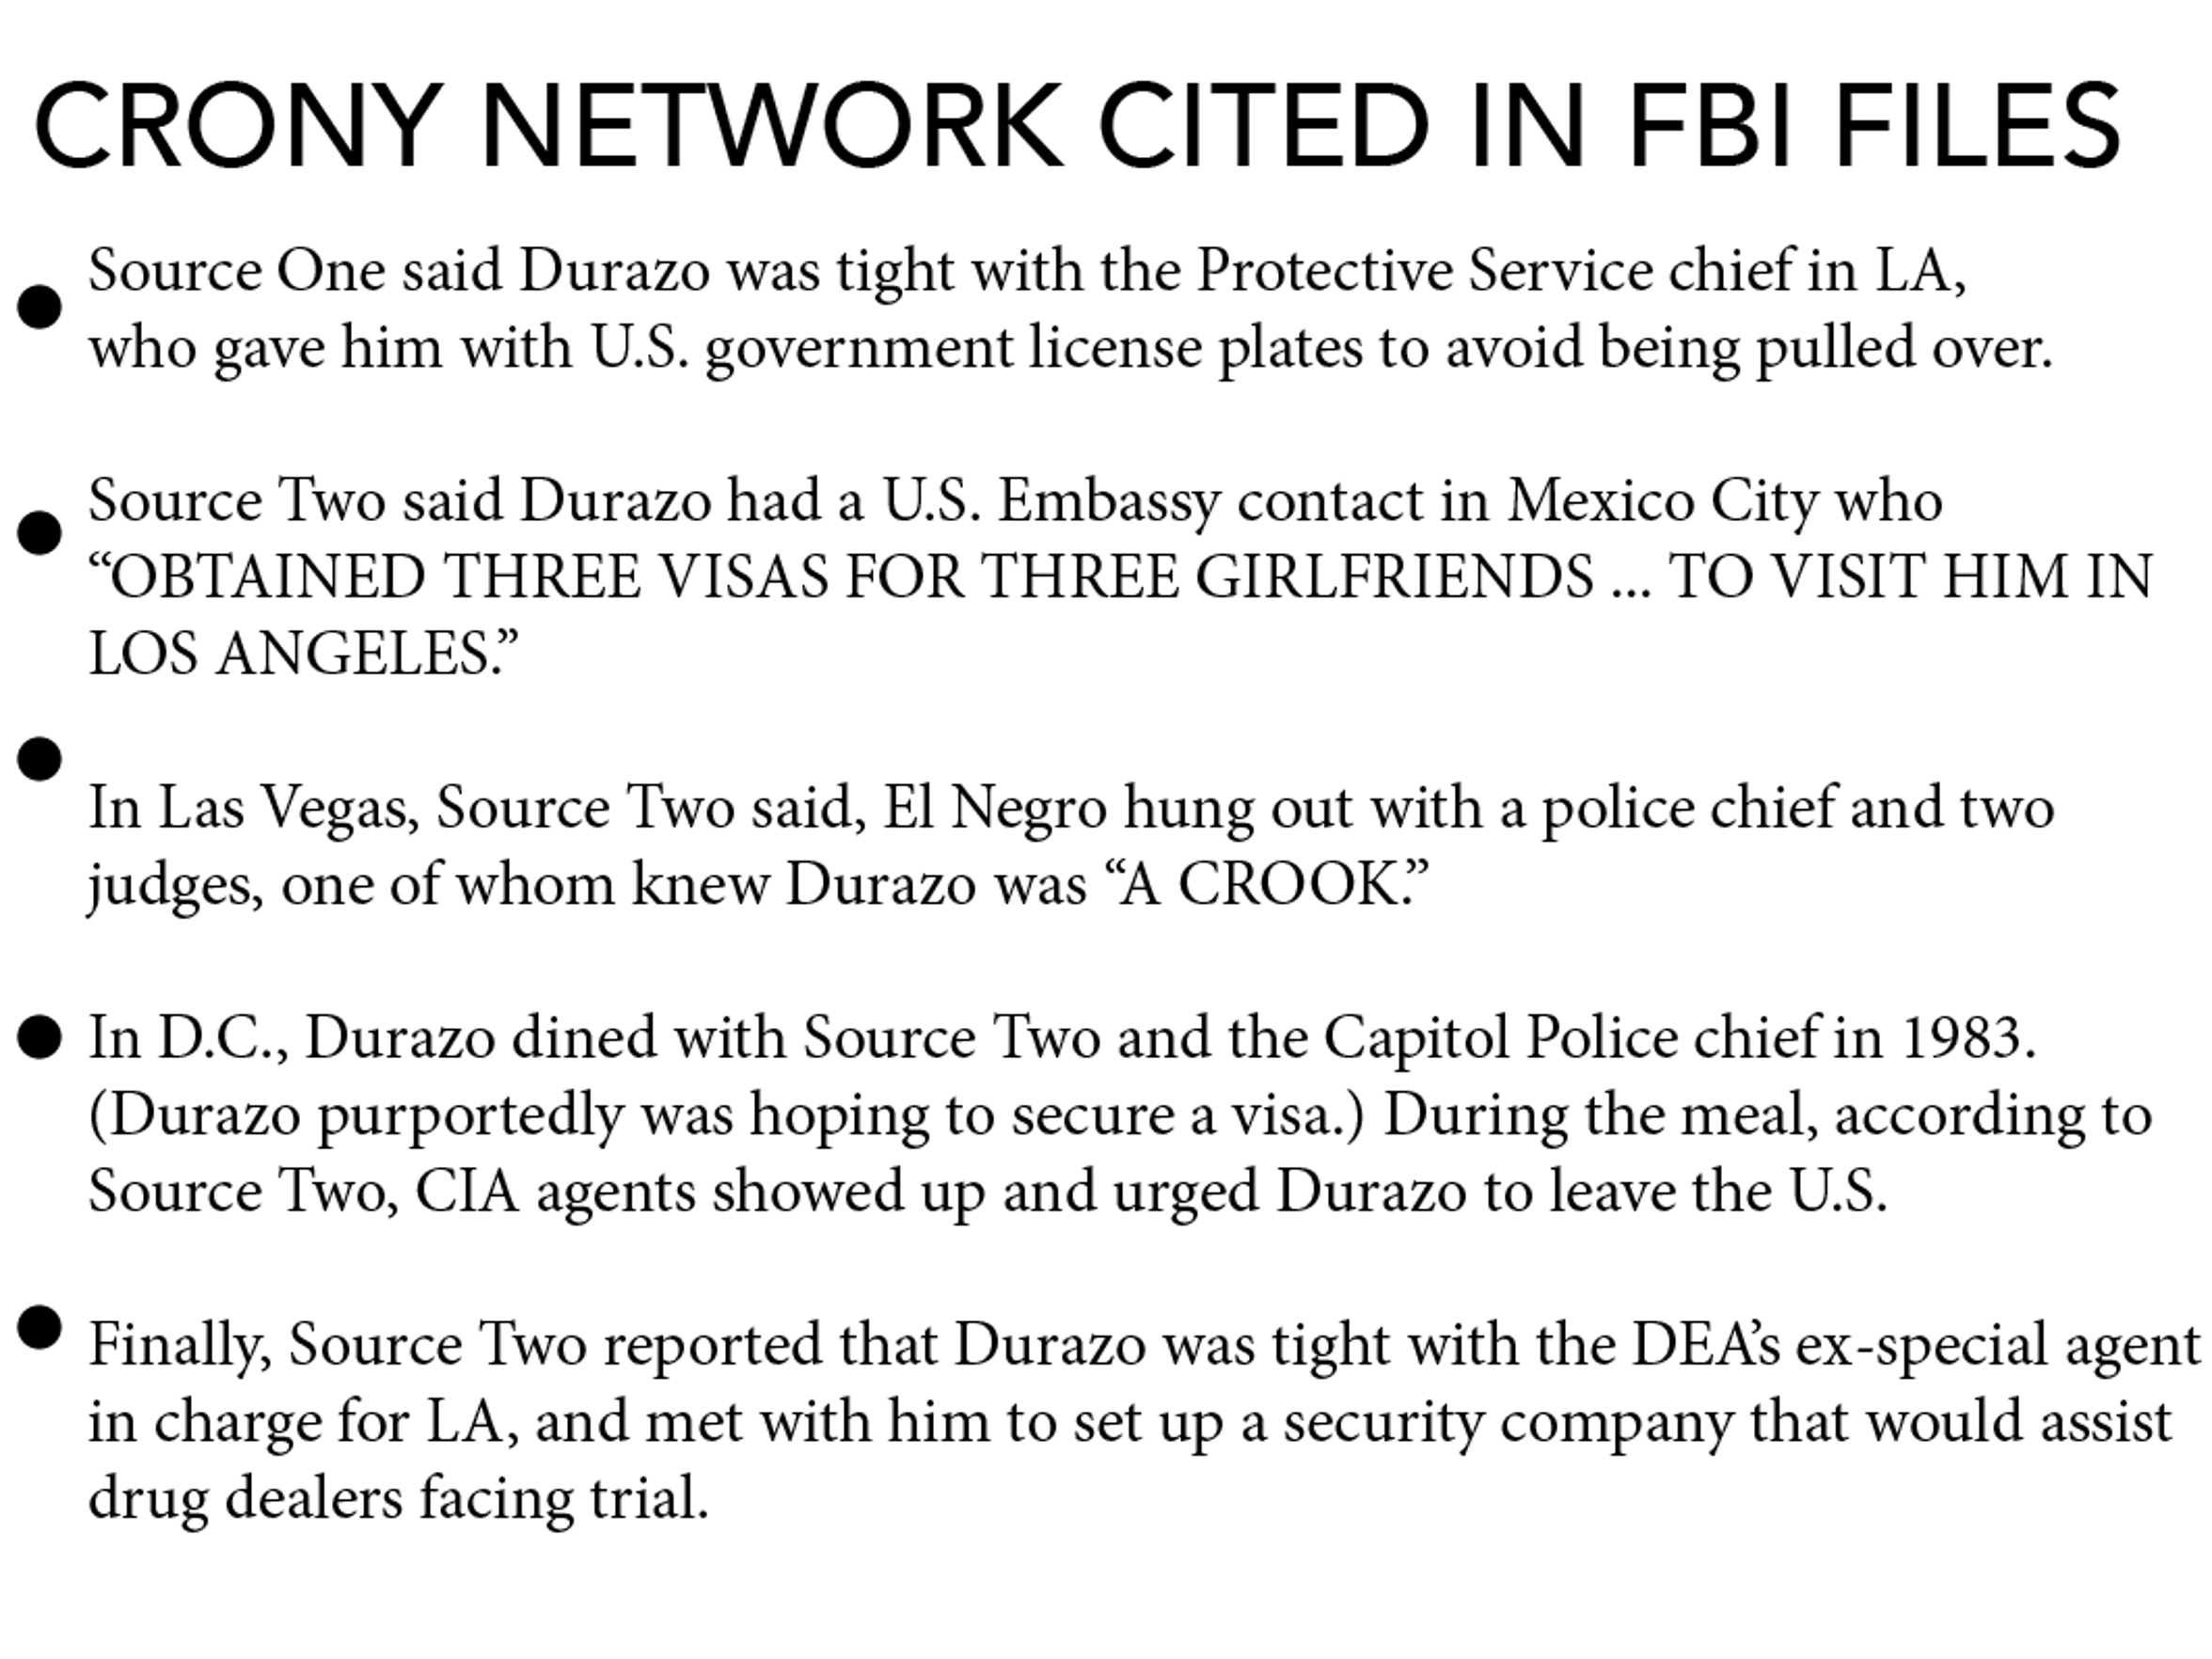 Arturo Durazo Moreno's tangled and crony network included prominent American politicians, judges, police chiefs and federal agents, as well as officials overseas.